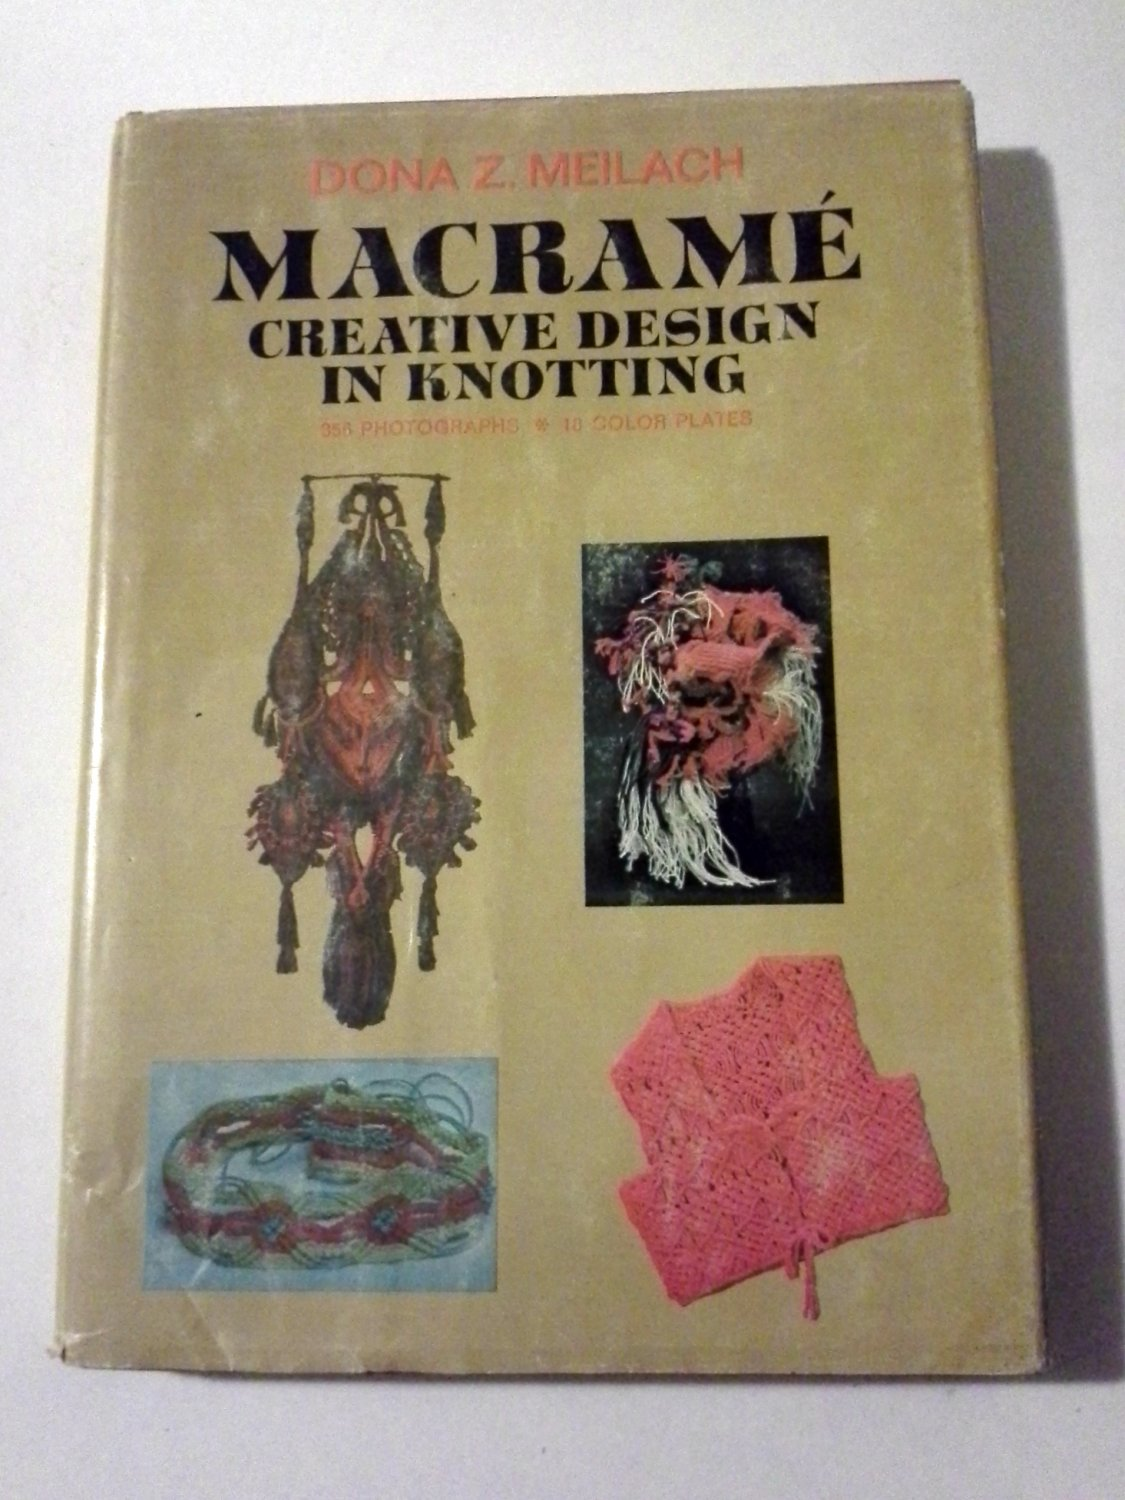 Macrame Creative Design in Knotting Dona Z Meilach Hardcover 1971